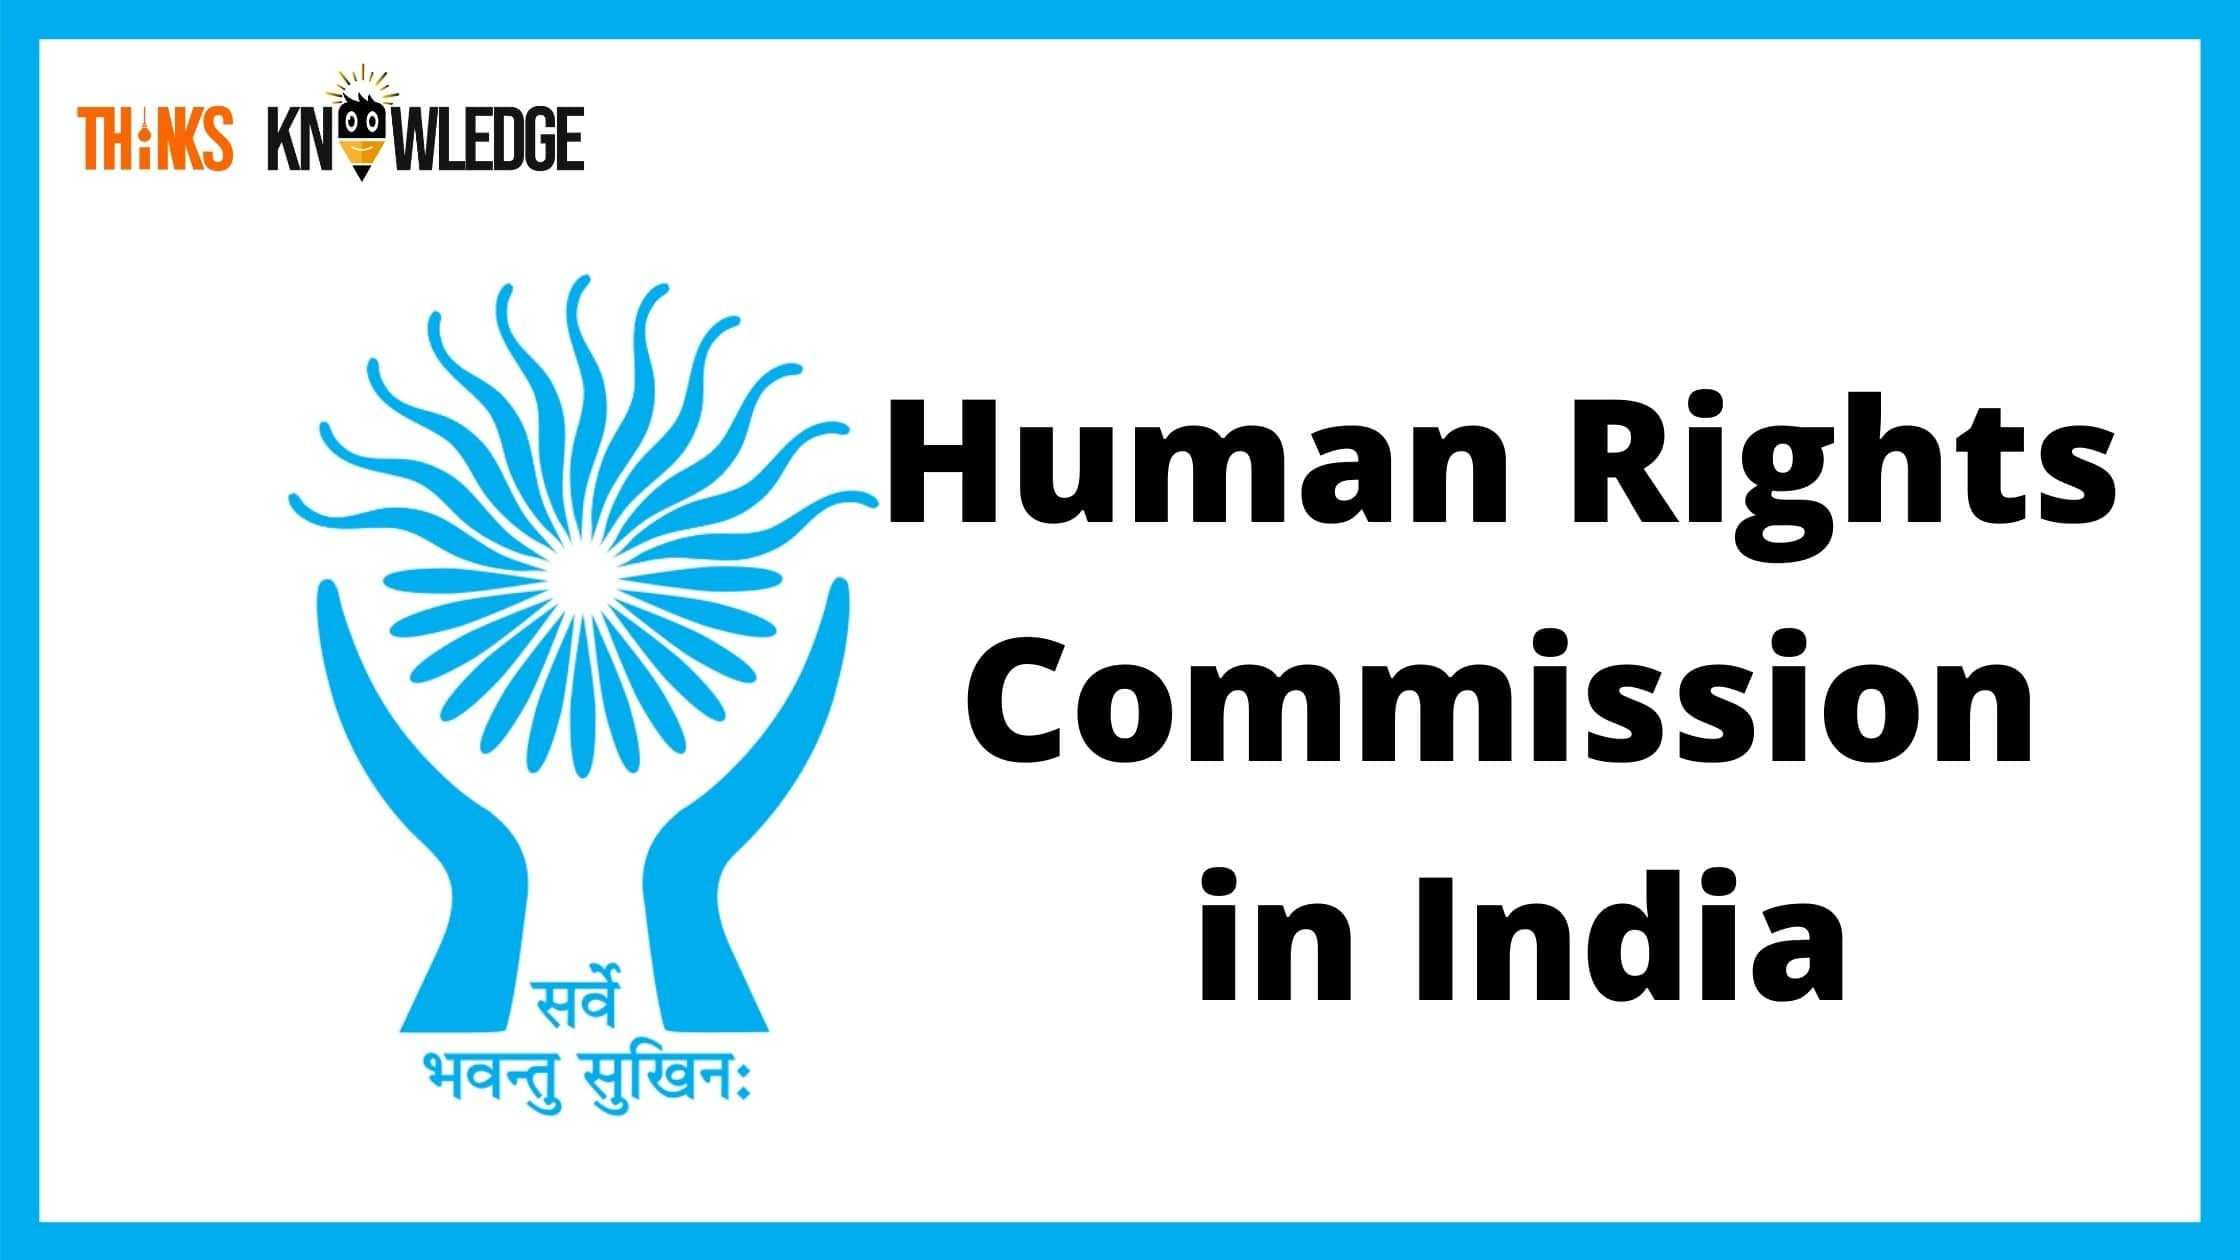 Human Rights Commission in India